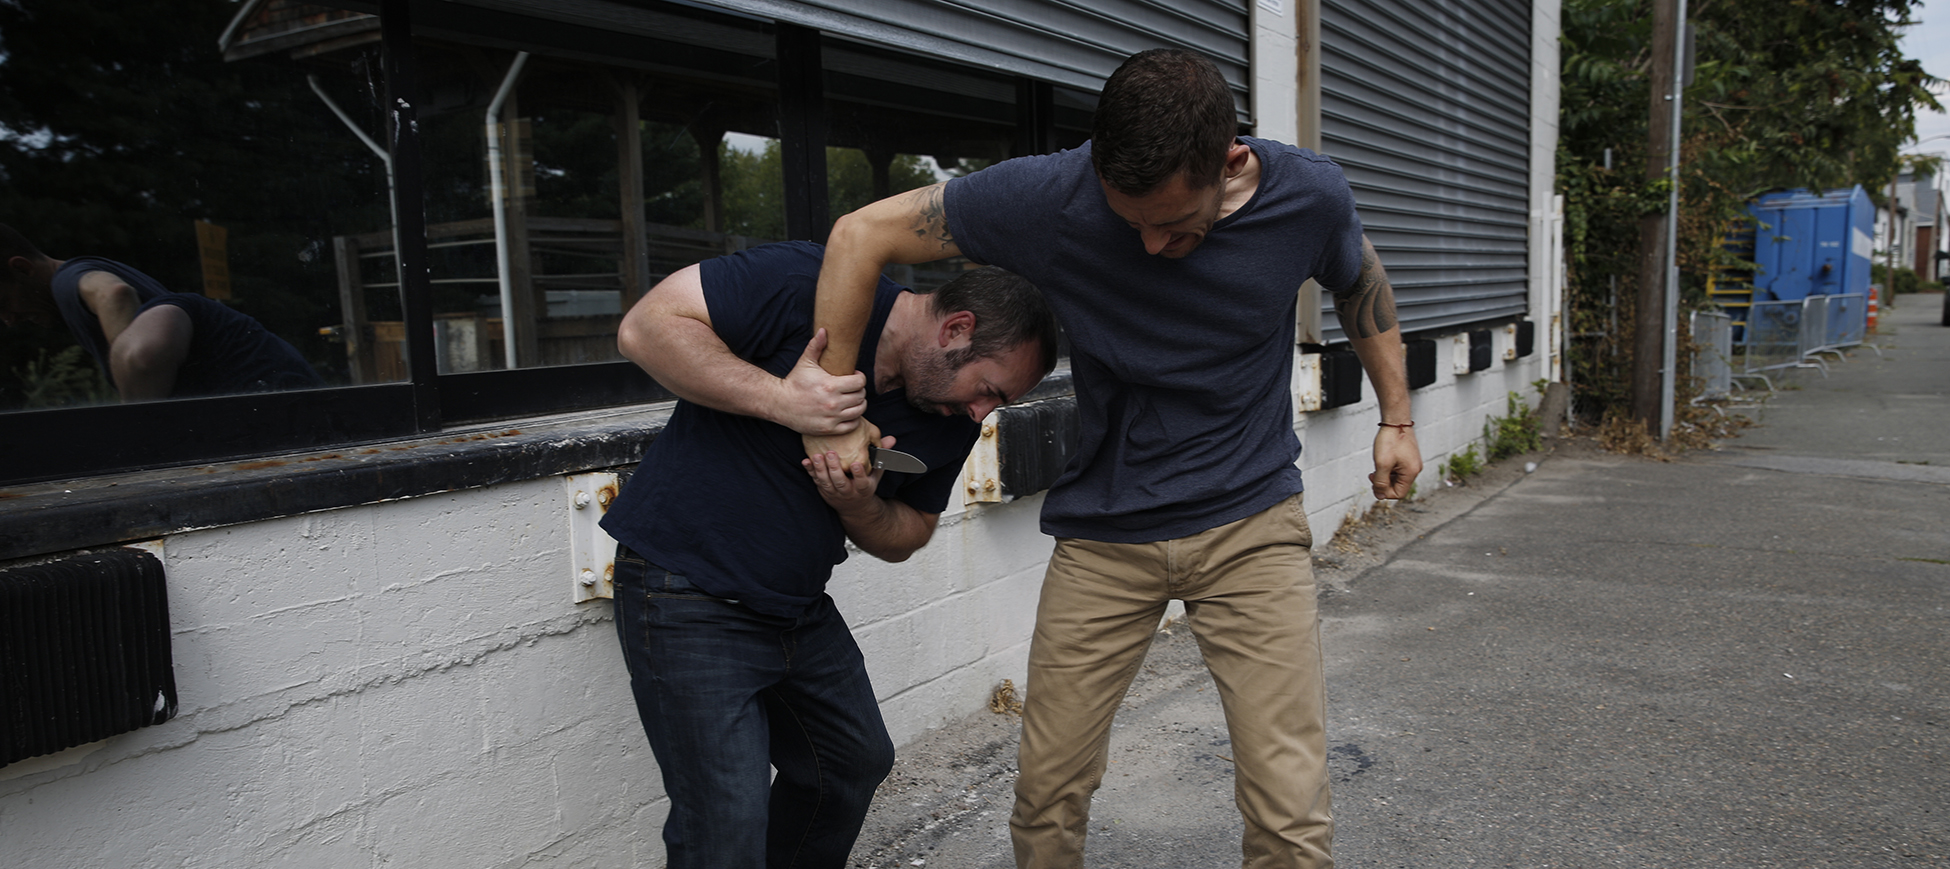 Krav Maga Instruction In Boston